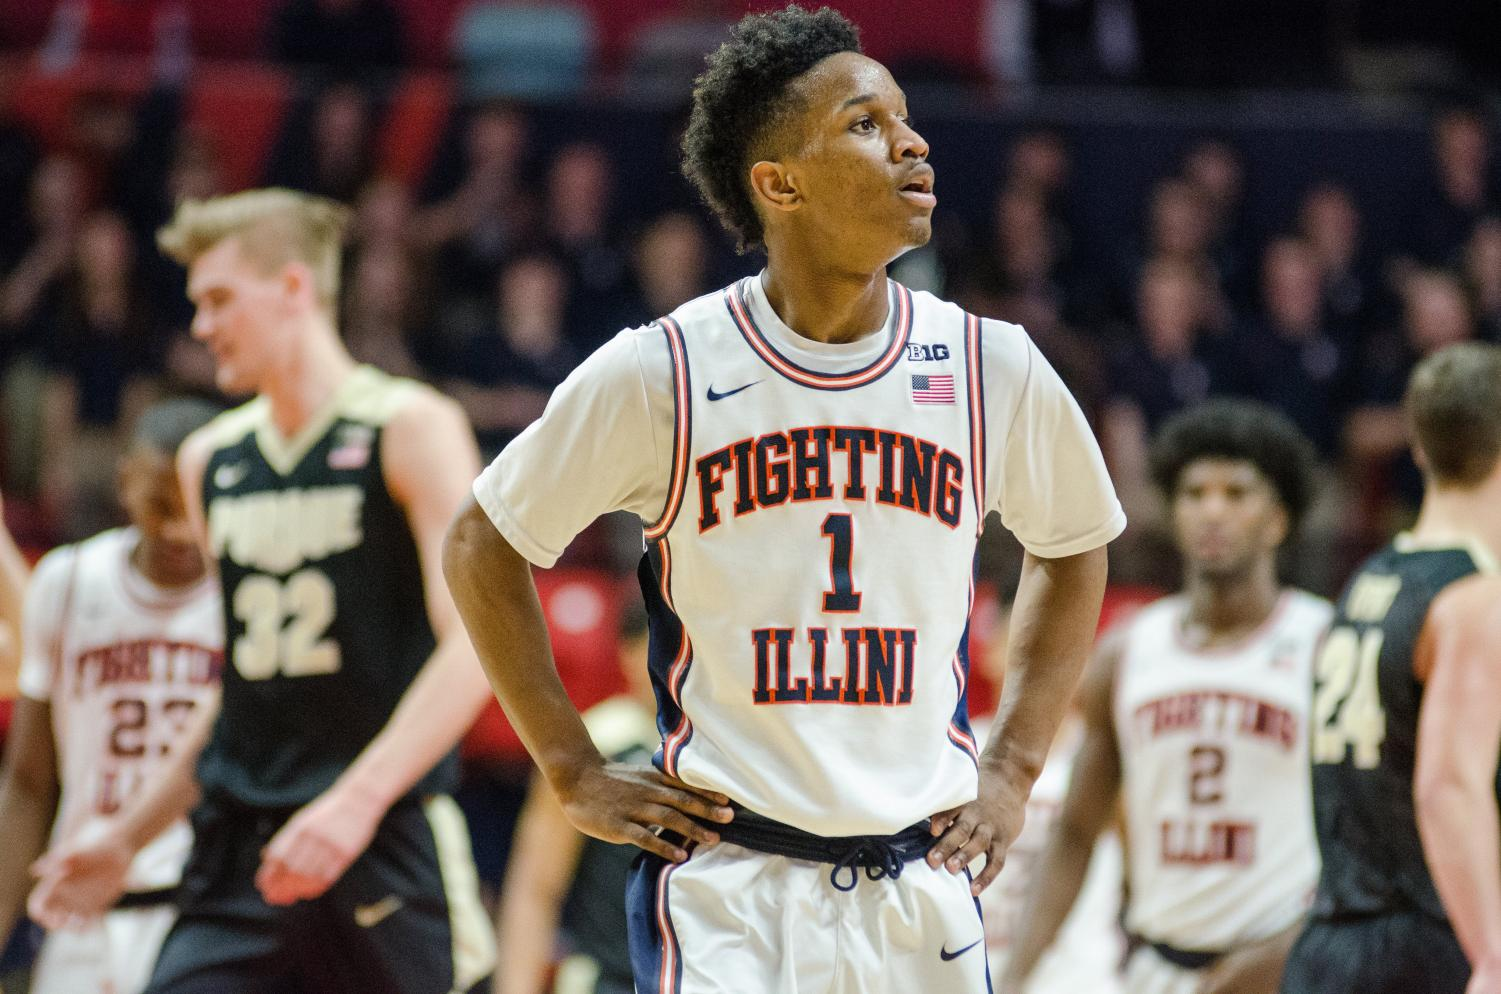 Trent Frazier takes a breath during Illinois' 93-86 loss to No. 6 Purdue on Feb. 22.